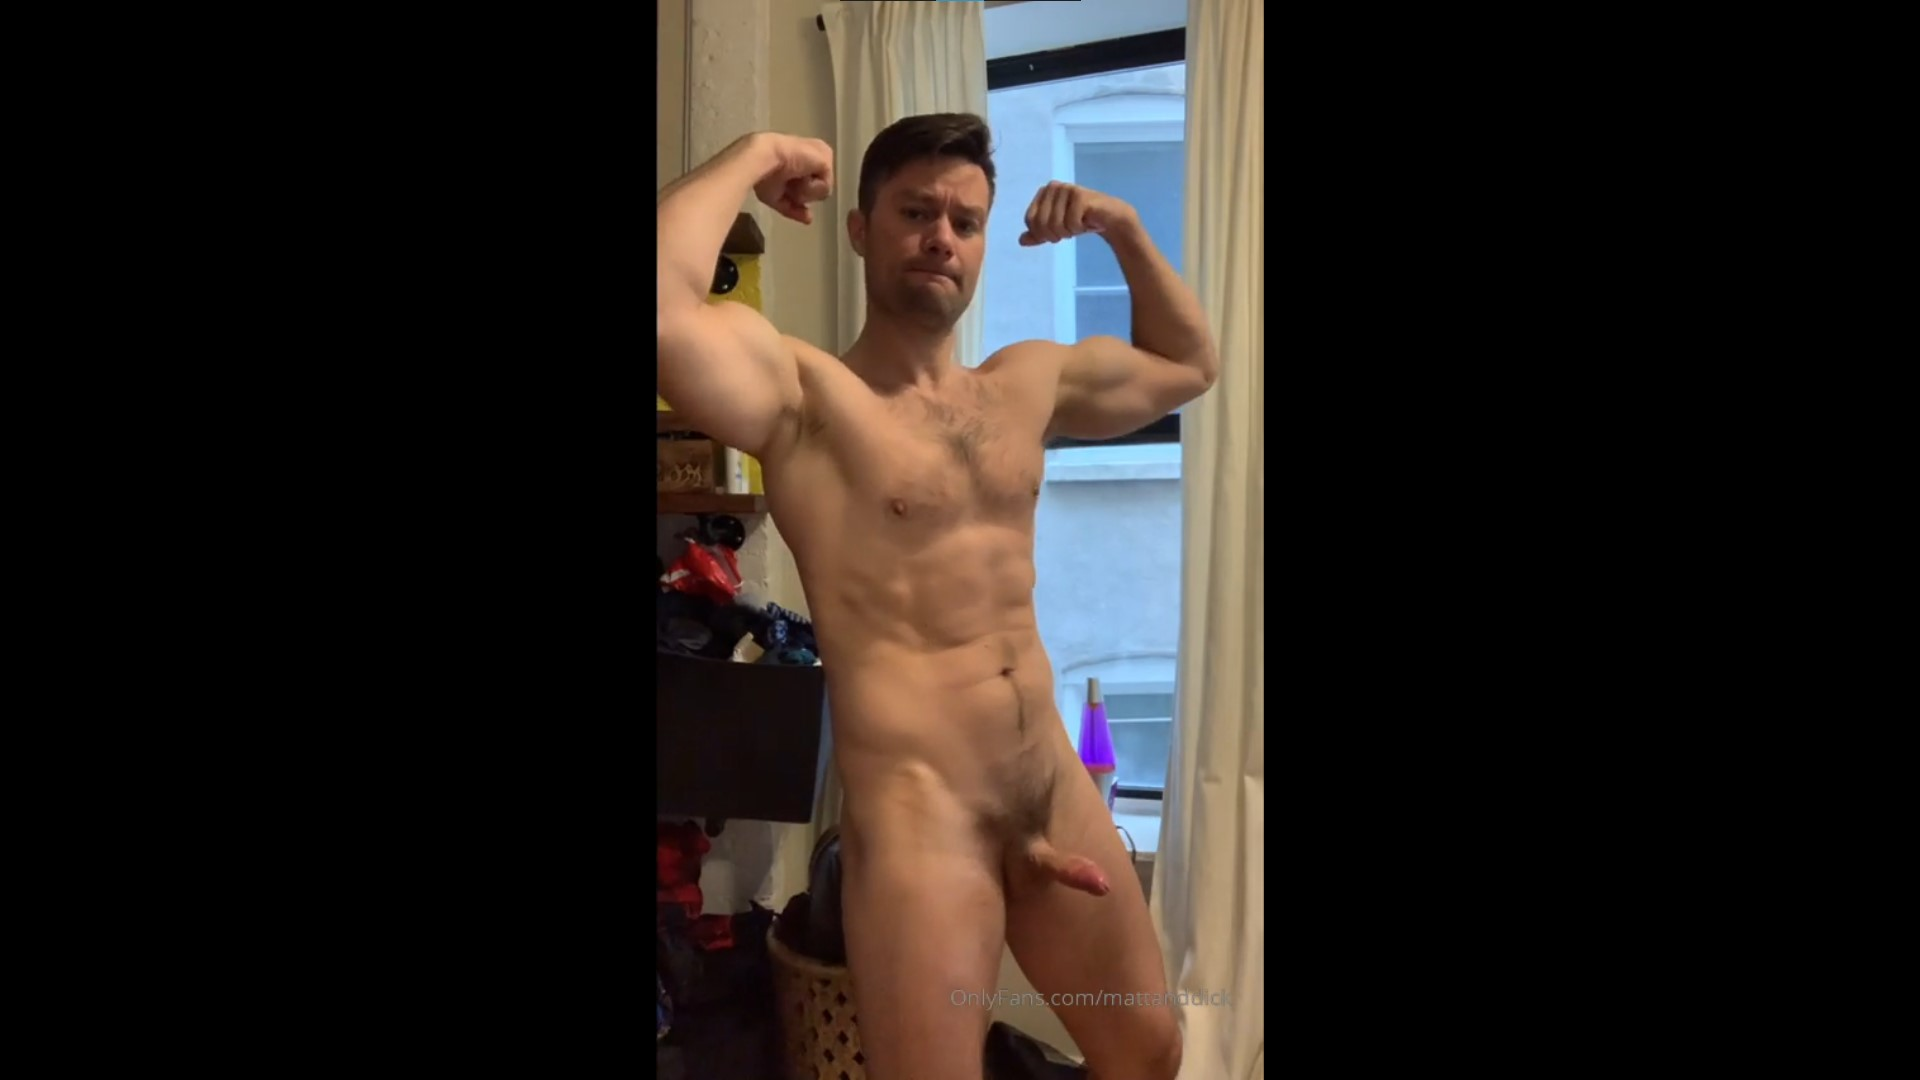 Stroking my dick till I shoot my load - MattandDick